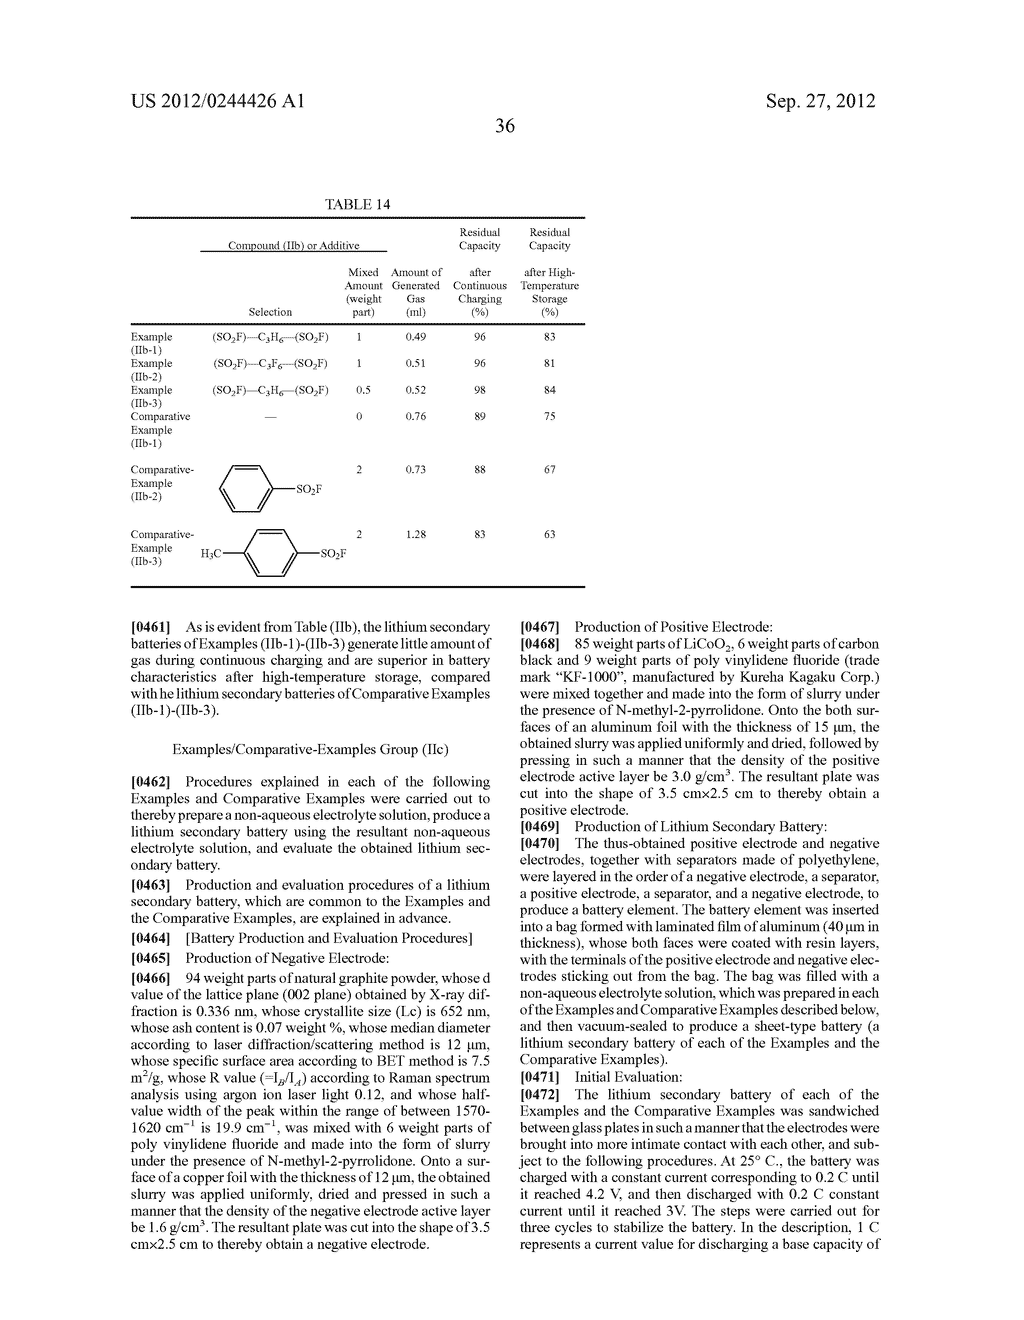 NONAQUEOUS ELECTROLYTE SOLUTION AND LITHIUM SECONDARY BATTERY USING SAME - diagram, schematic, and image 37